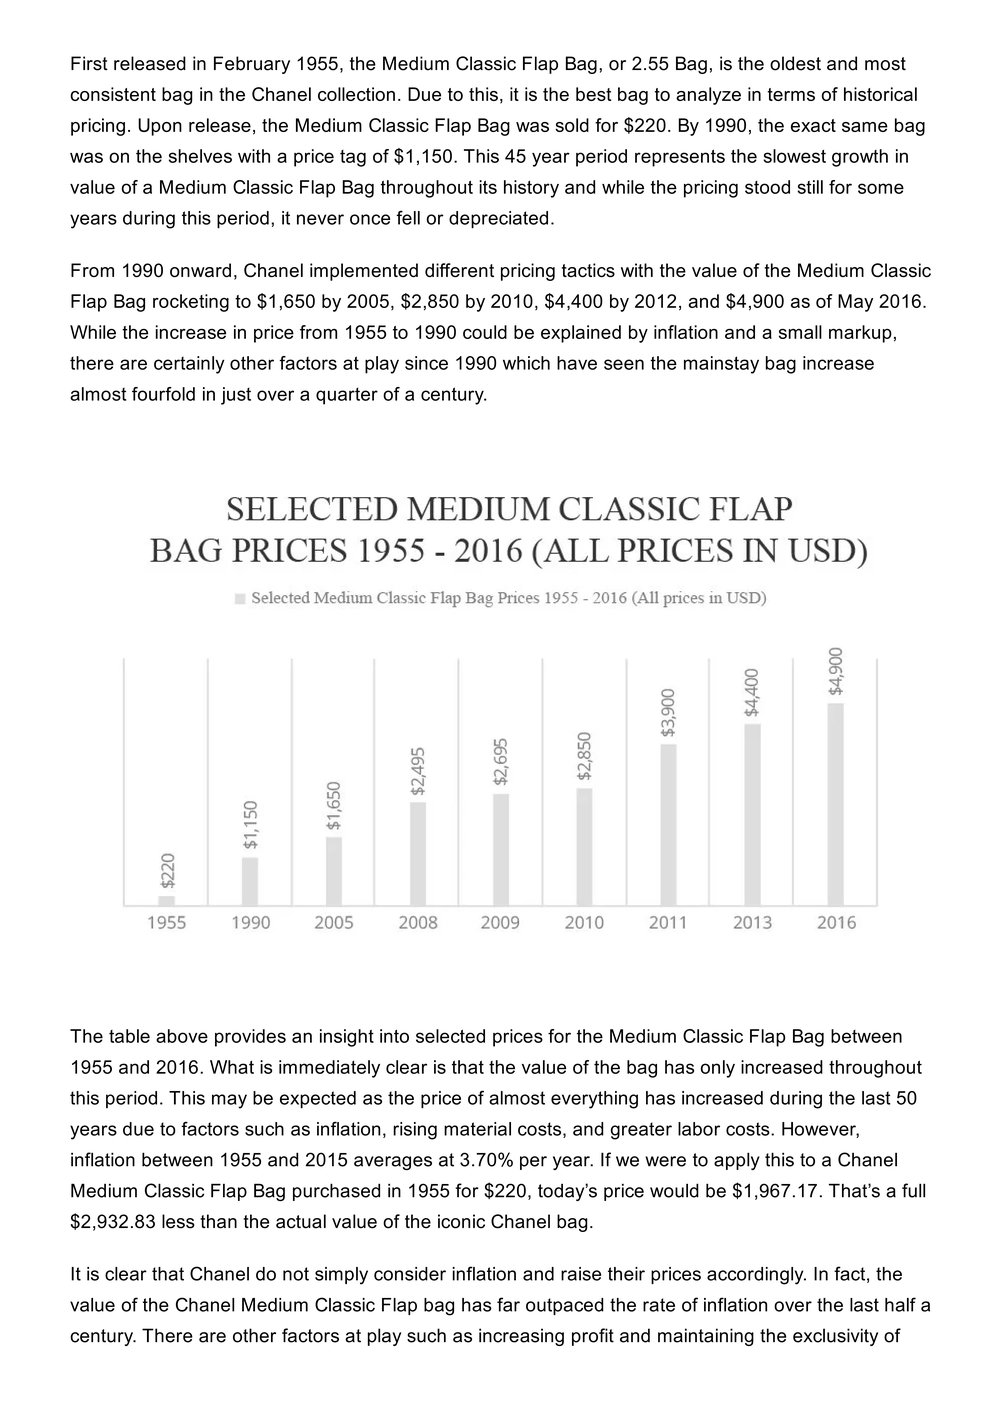 Chanel Bag Values Research Study _ Baghunter2.jpg